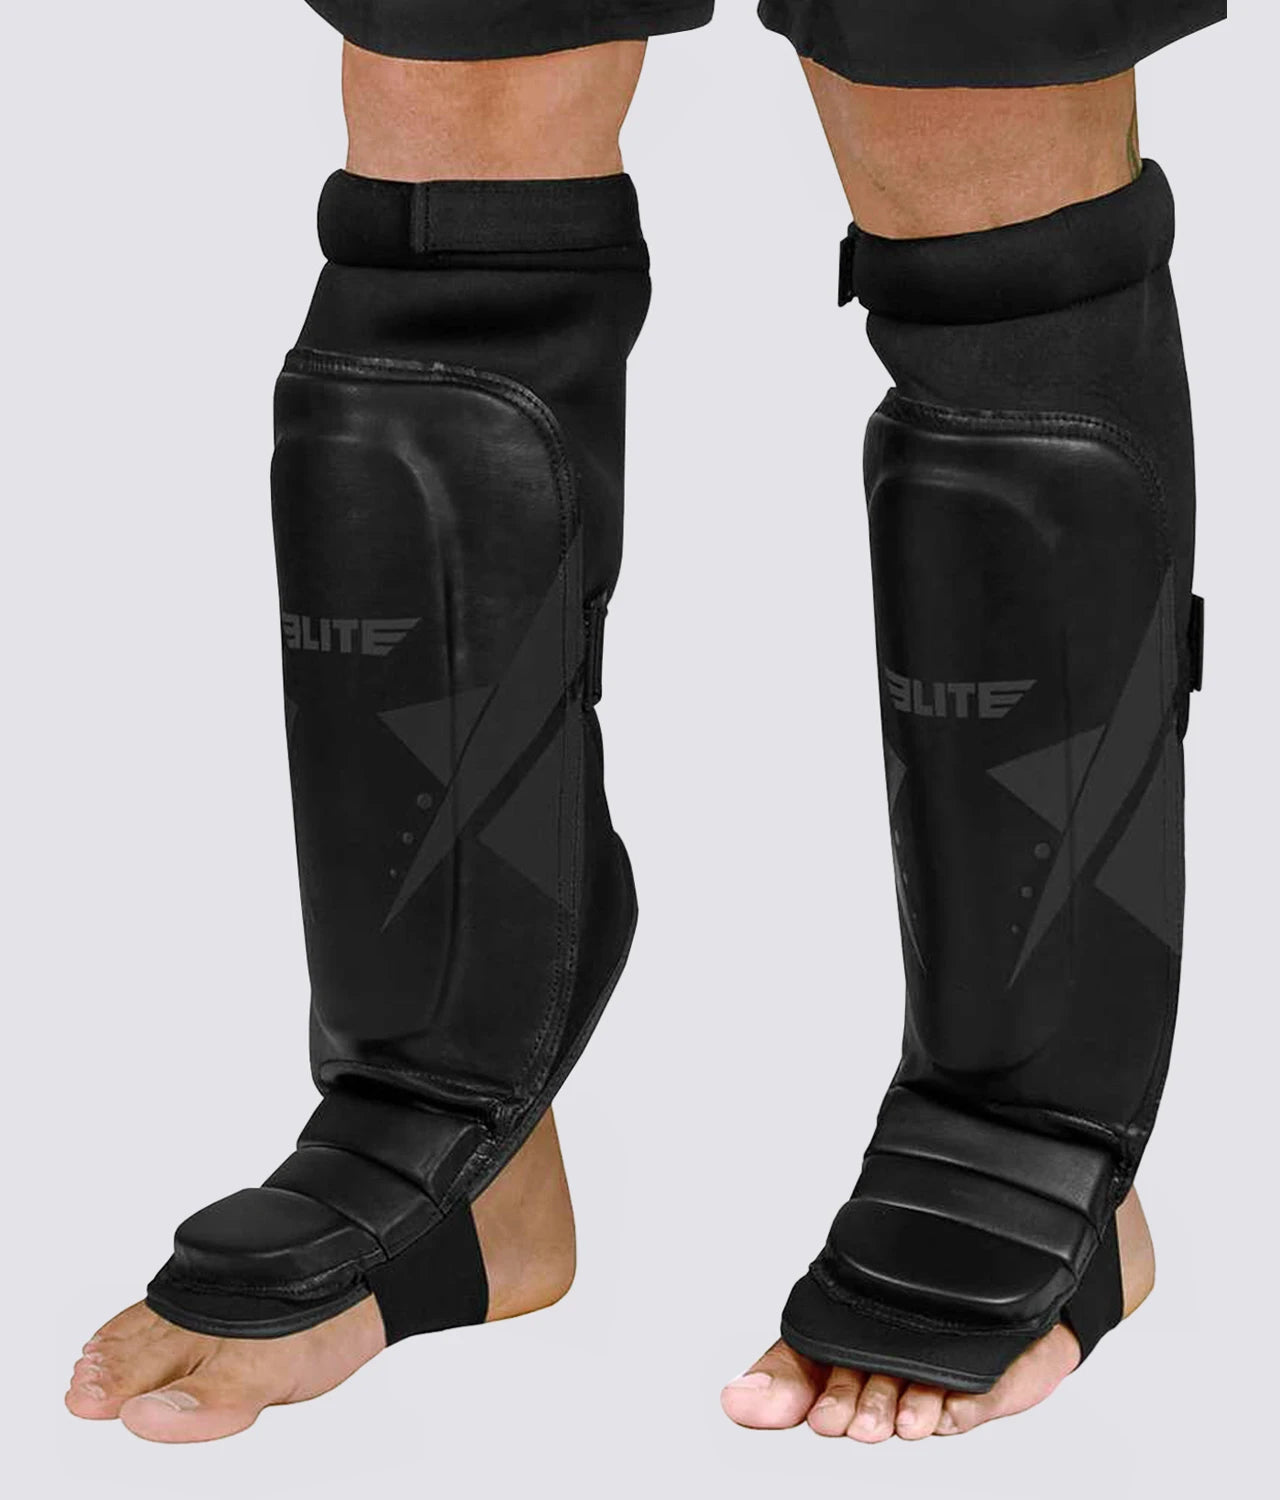 Elite Sports Star Series Black/Black Muay Thai Shin guards